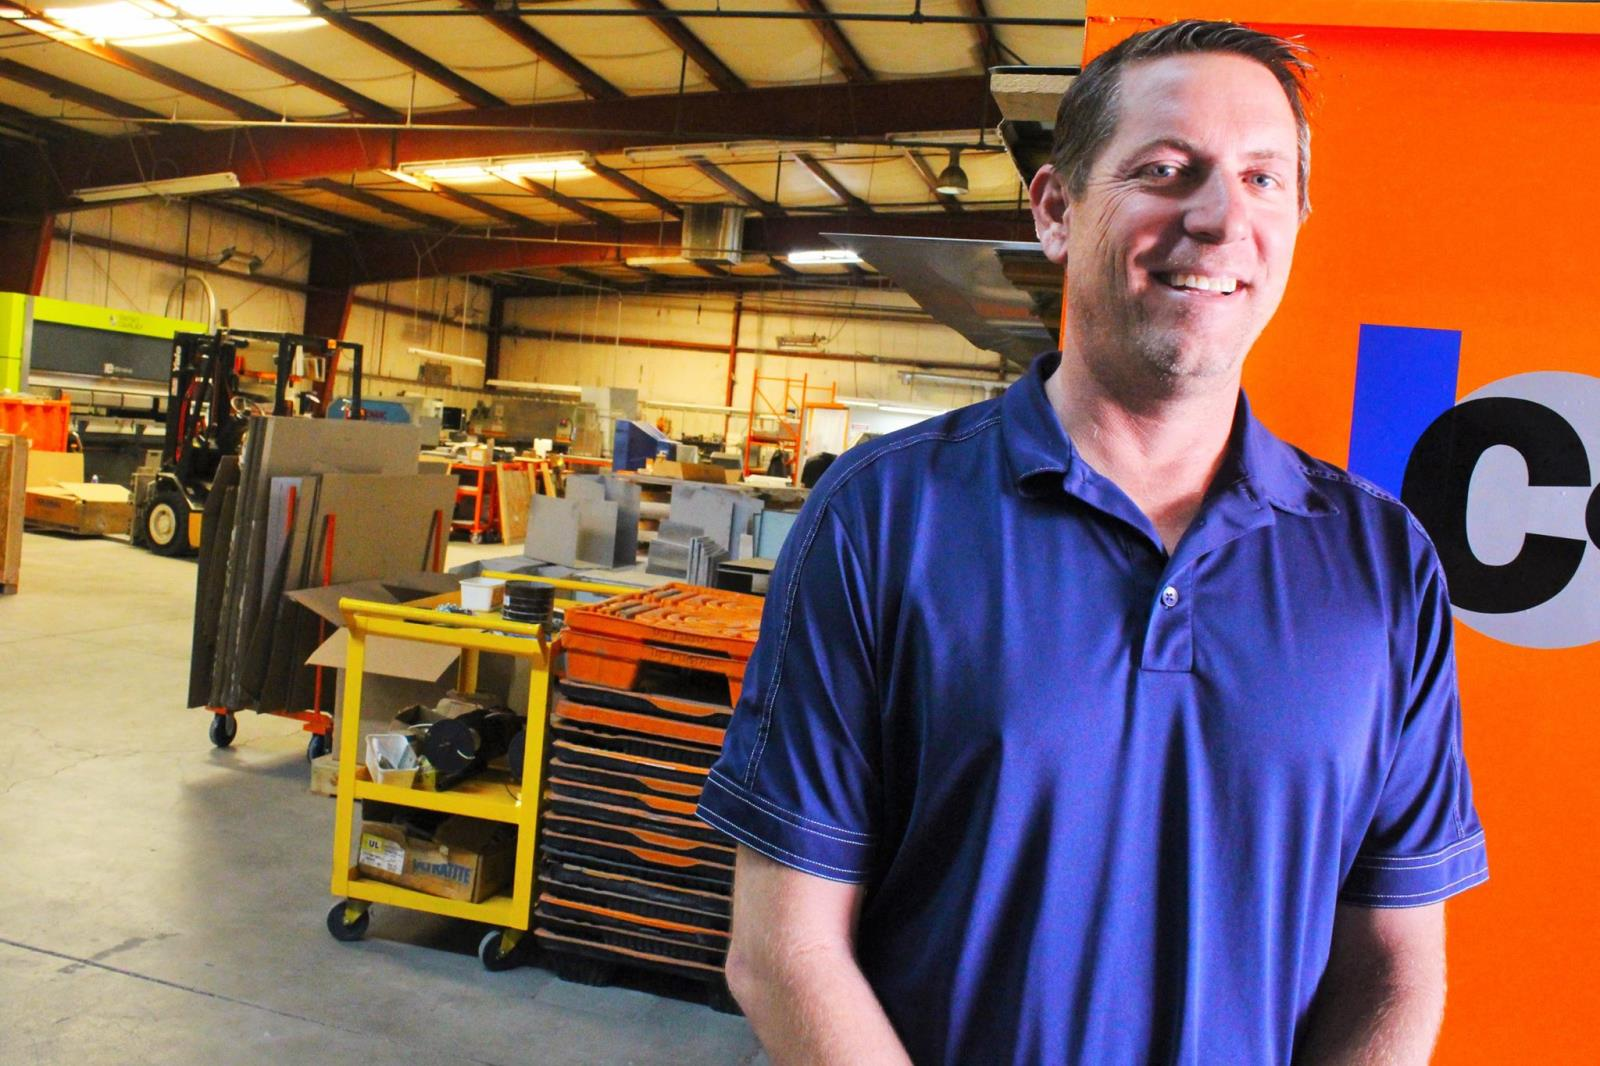 Apple Valley entrepreneur named 2017 Small Business Person of the Year